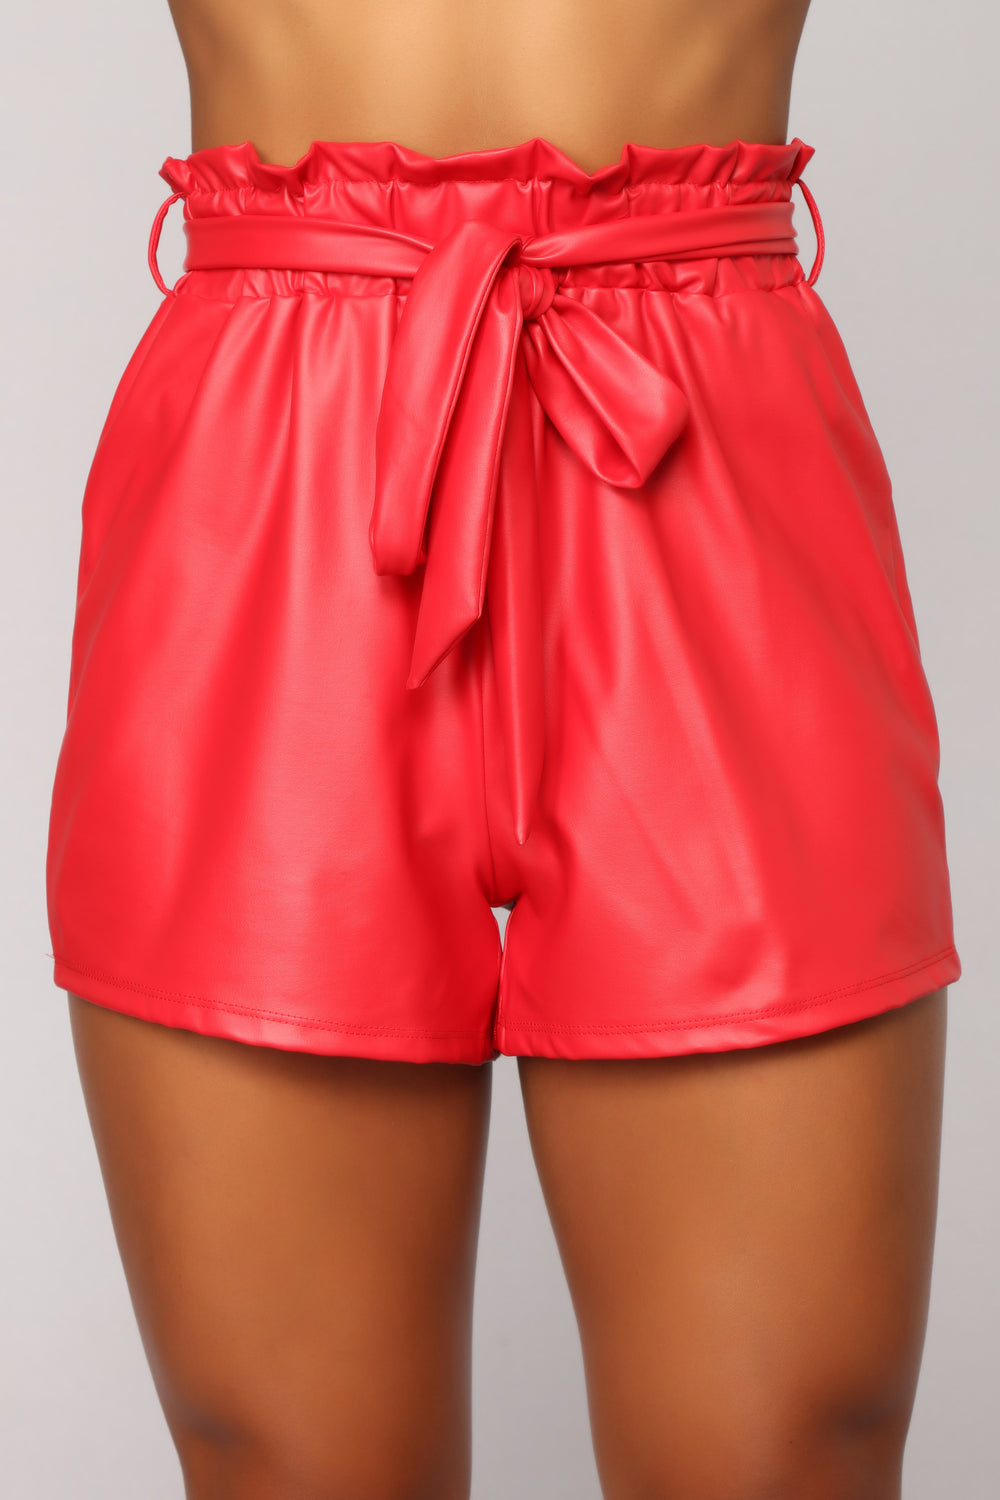 Celeste Tie Waist Shorts - Red